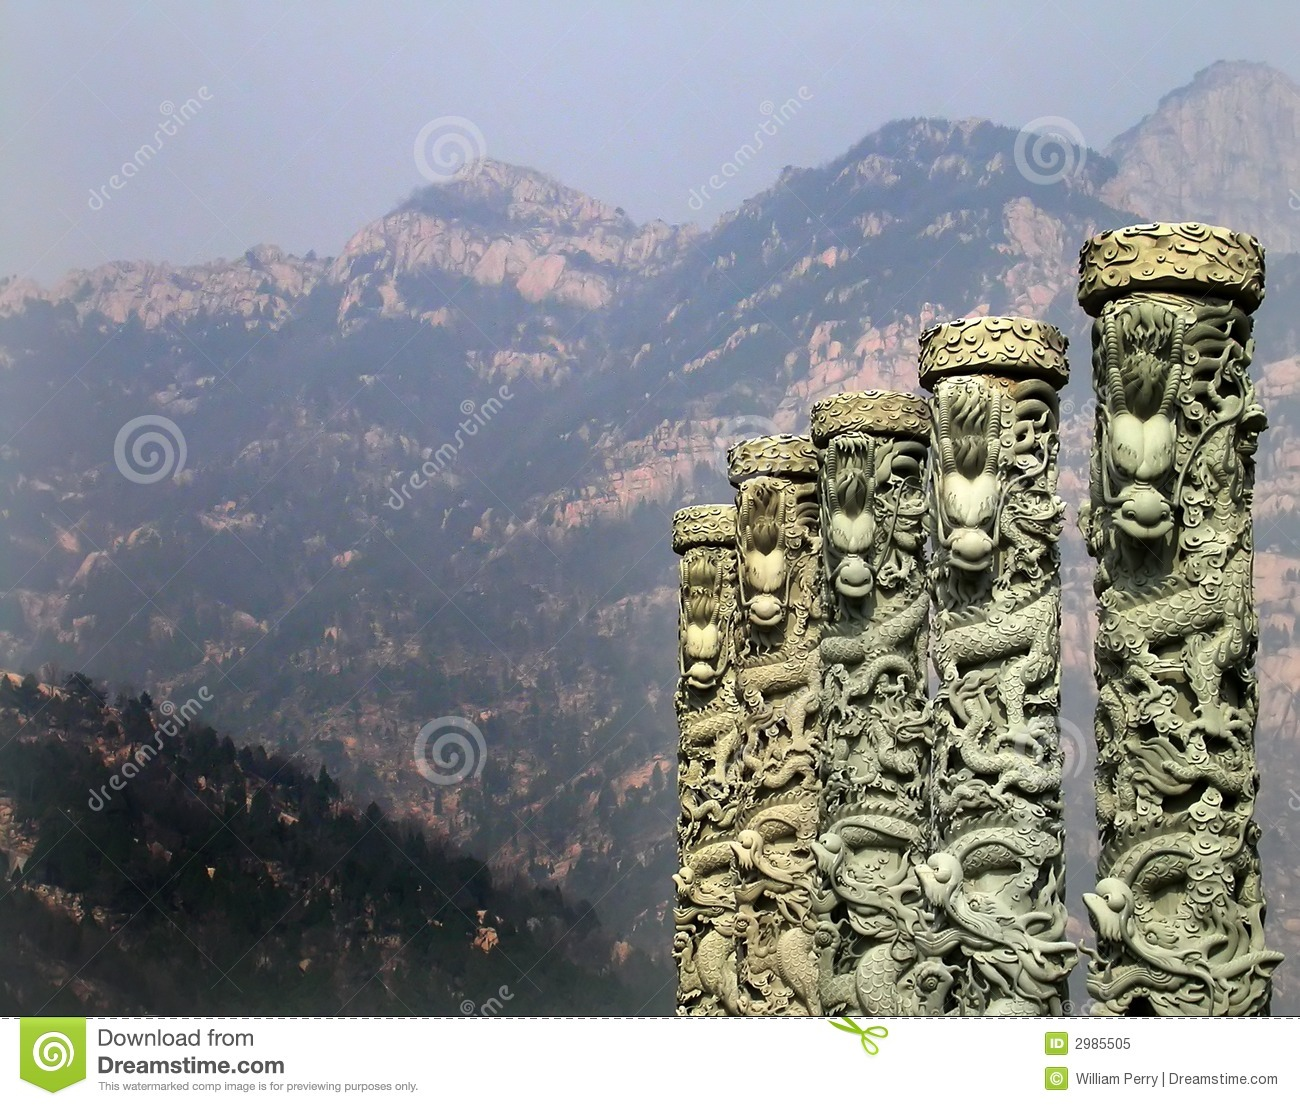 ... China. Taishan is one of the most famous mountains in China